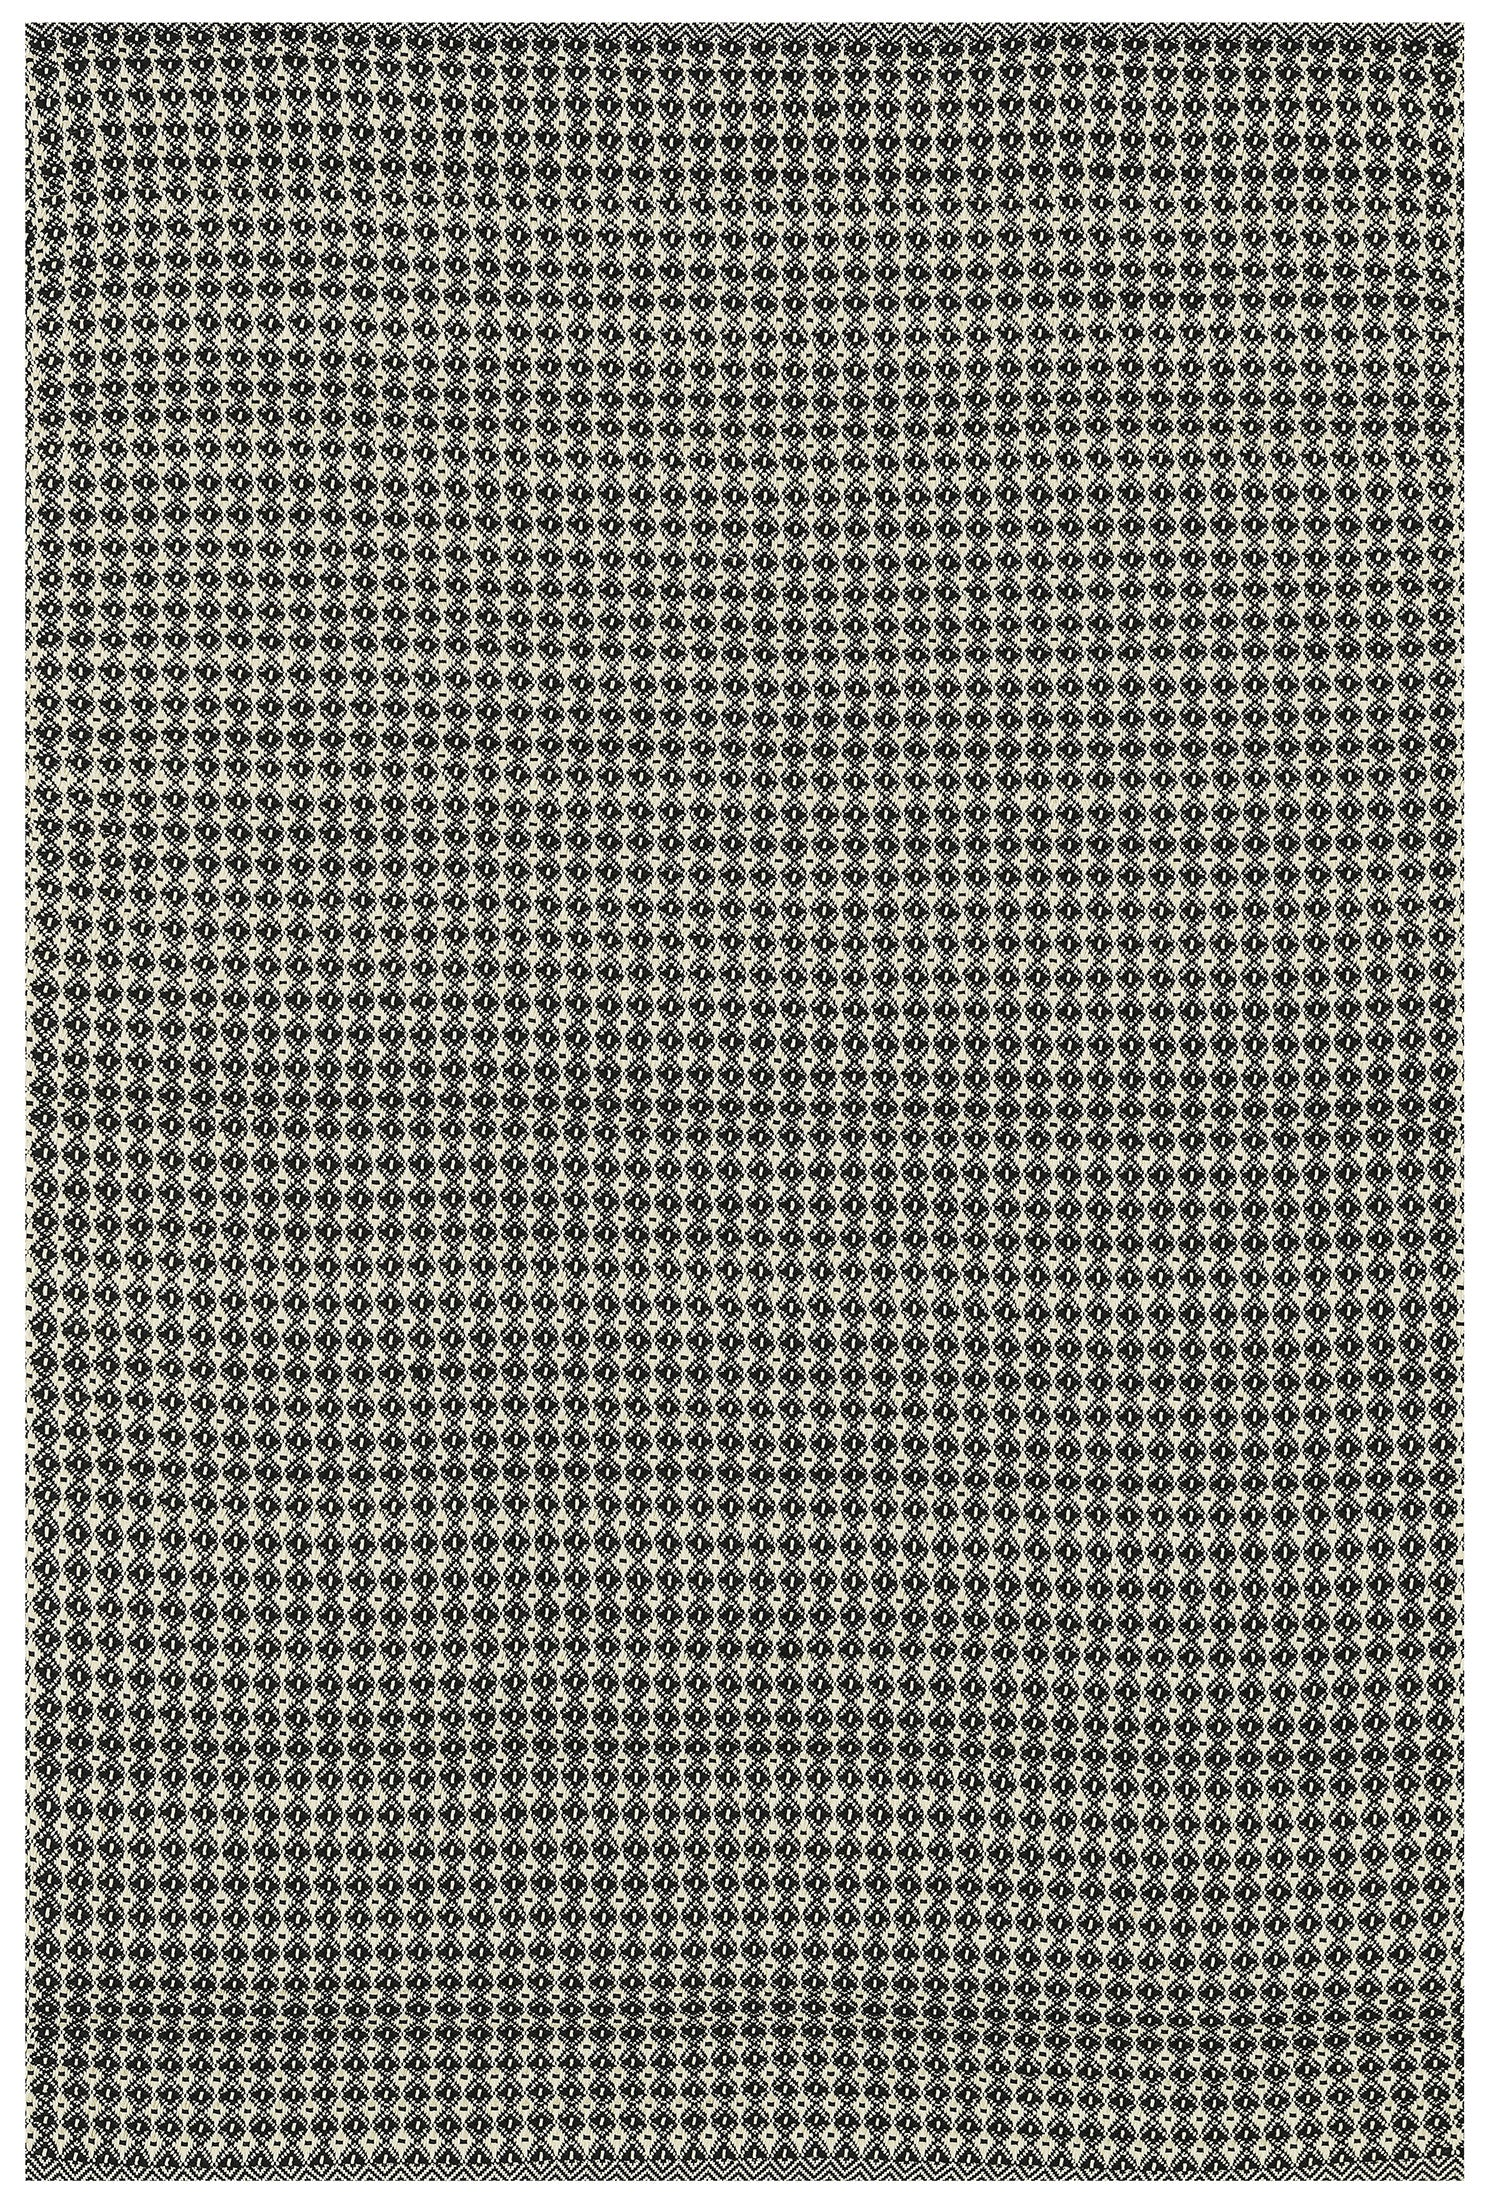 Mid Century Modern Black Neutral Woven Outdoor Rug Woodwaves